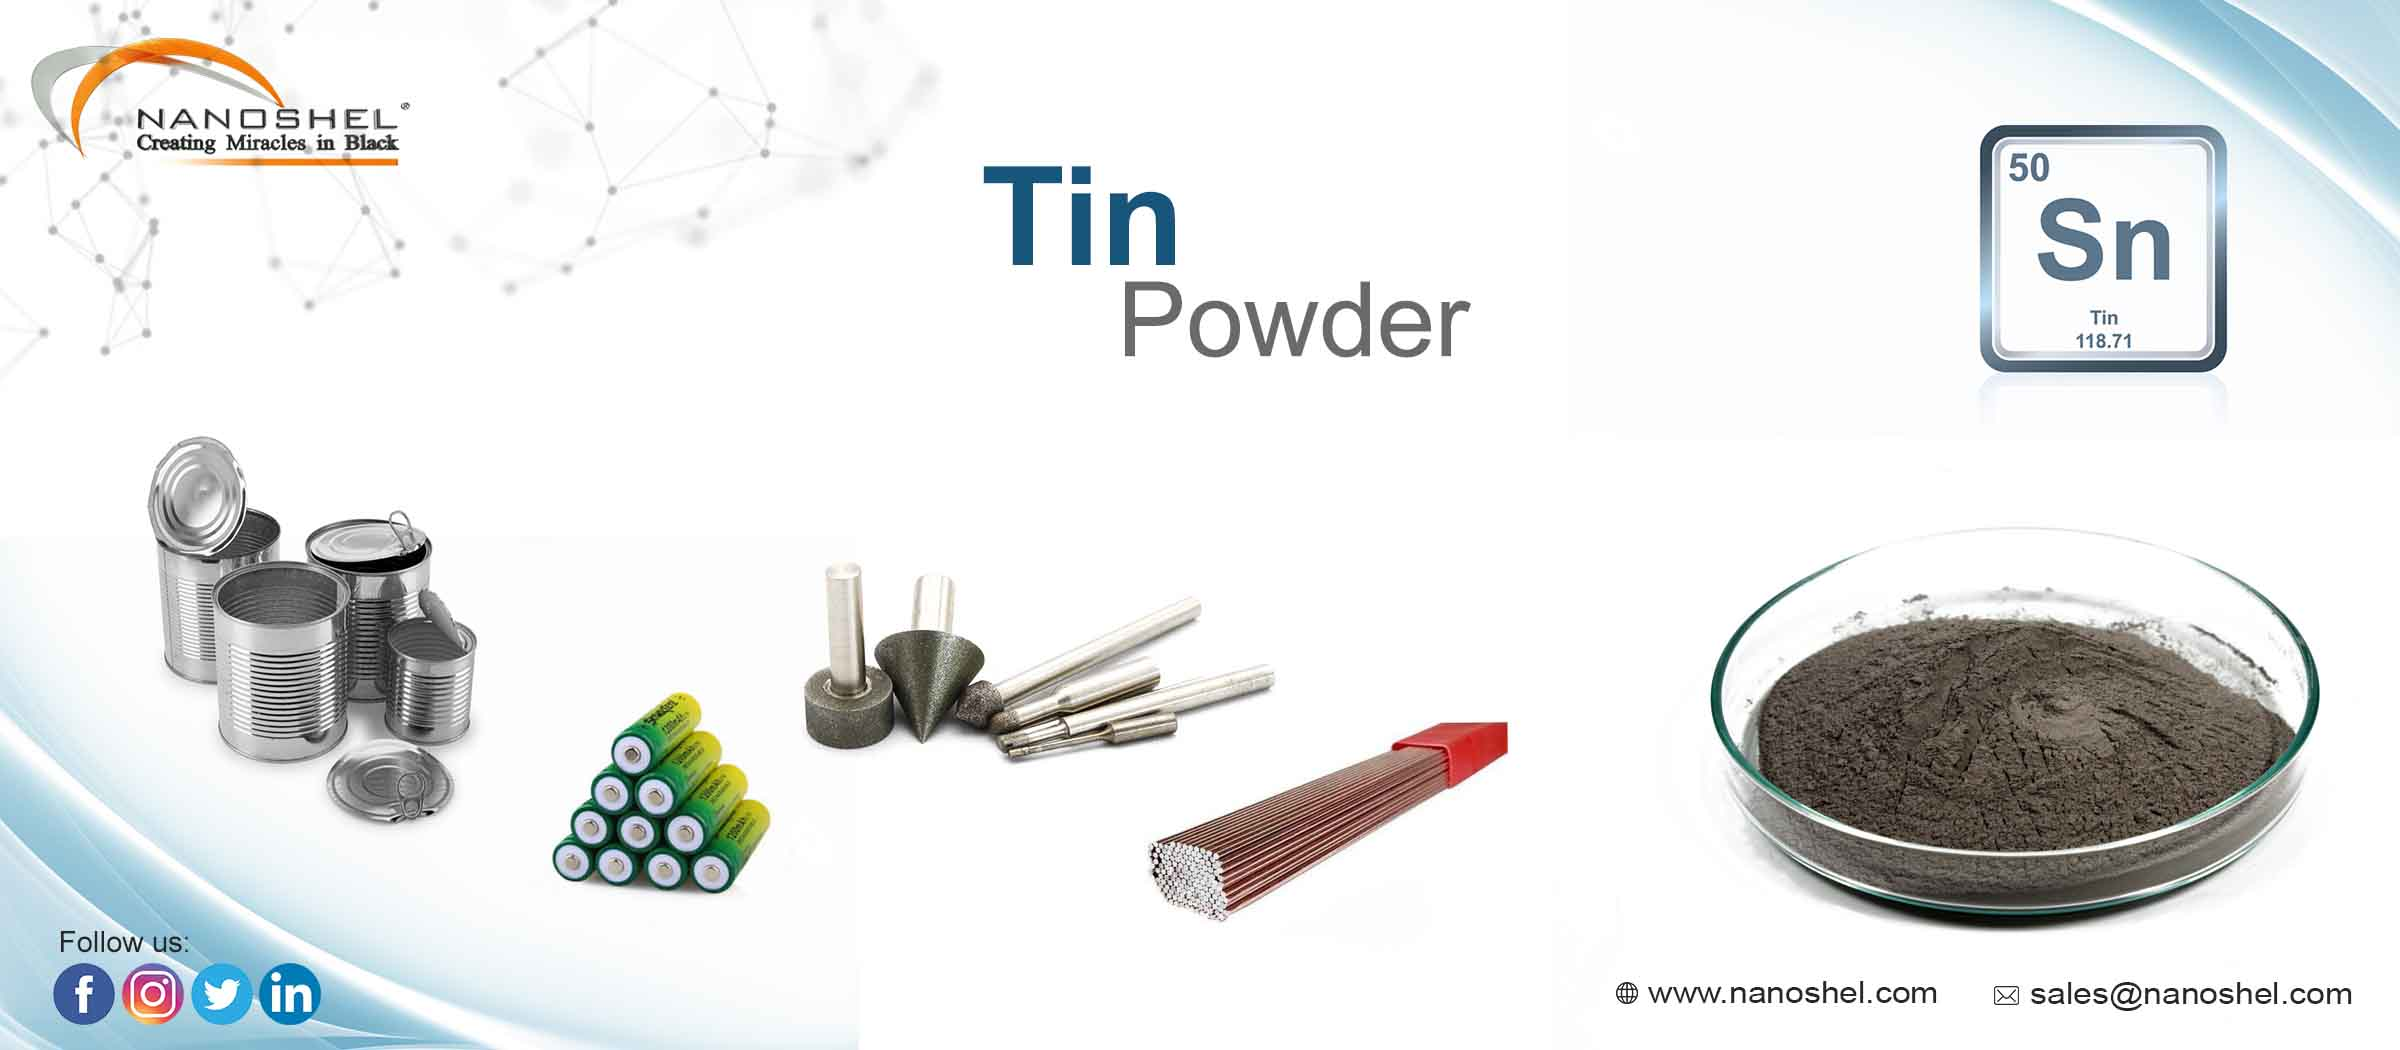 Tin Powder